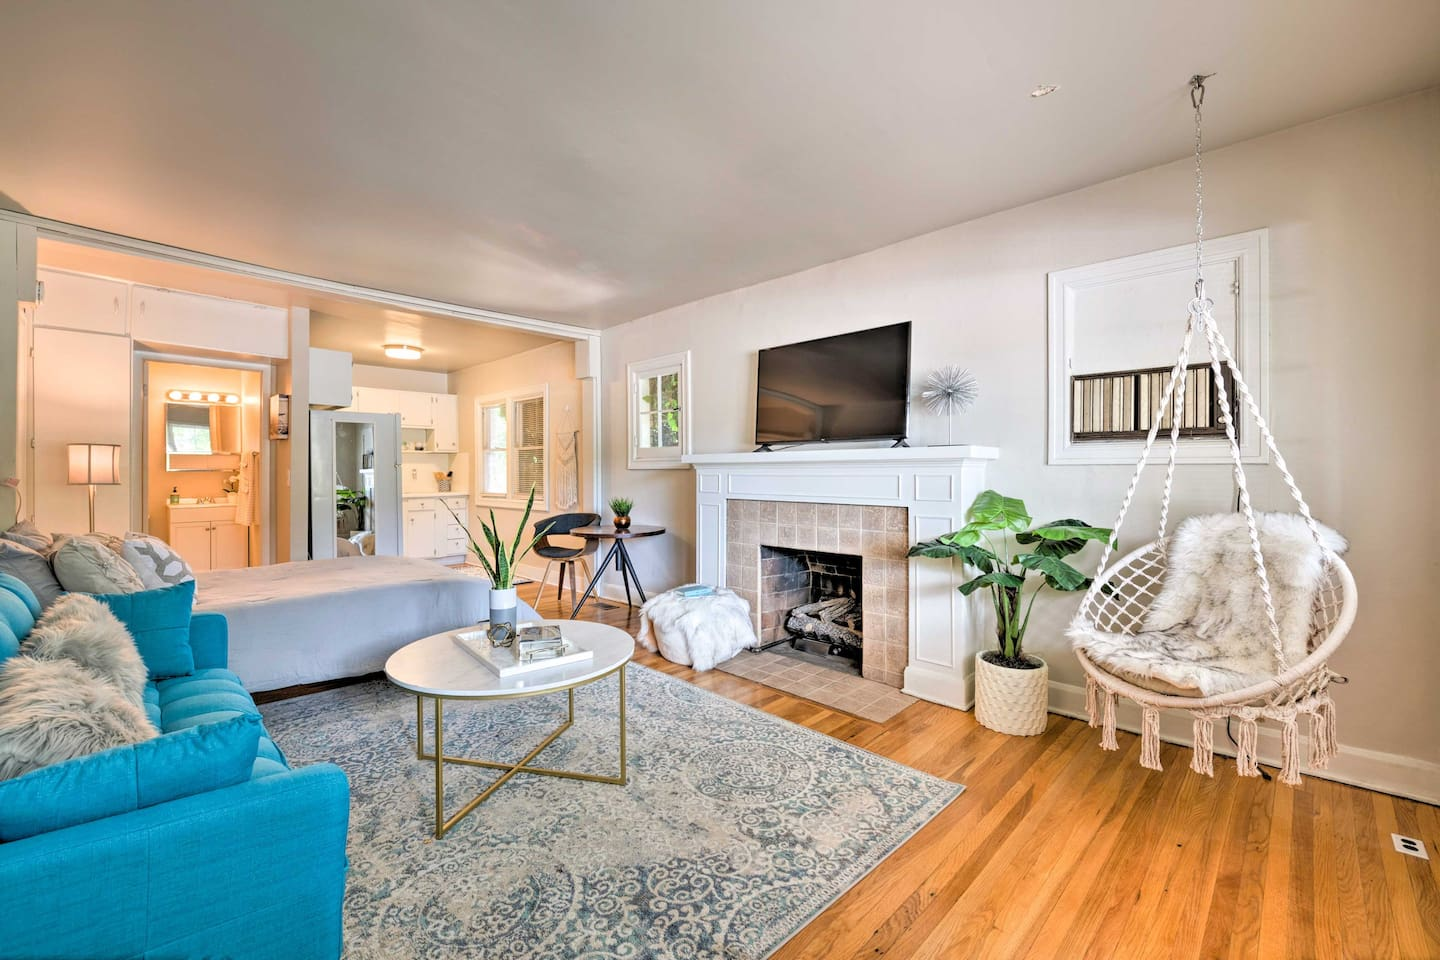 Make this charming studio your new home-away-from-home in Salt Lake City!